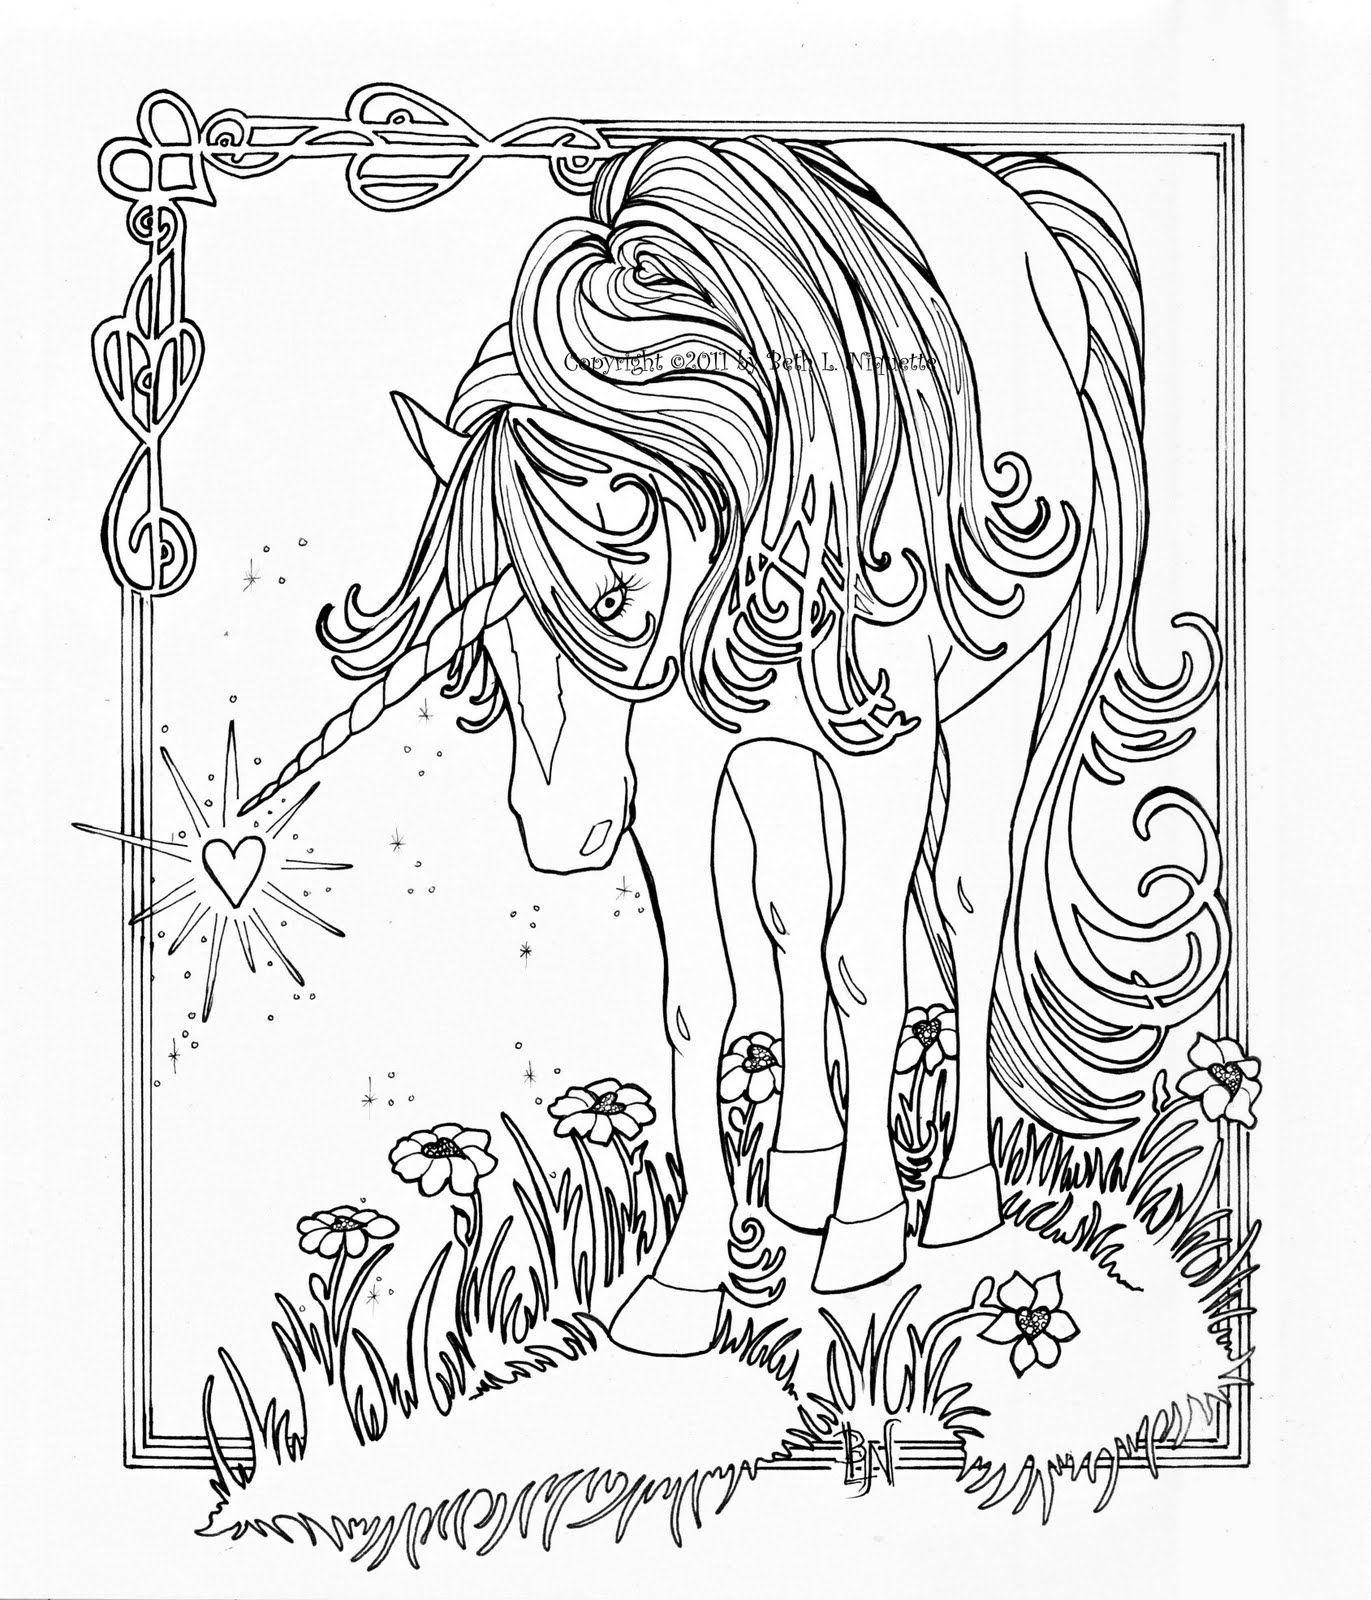 Magical unicorn coloring pages - Unicorn Coloring Pages For Adults Unicorn With Wings Coloring Pages